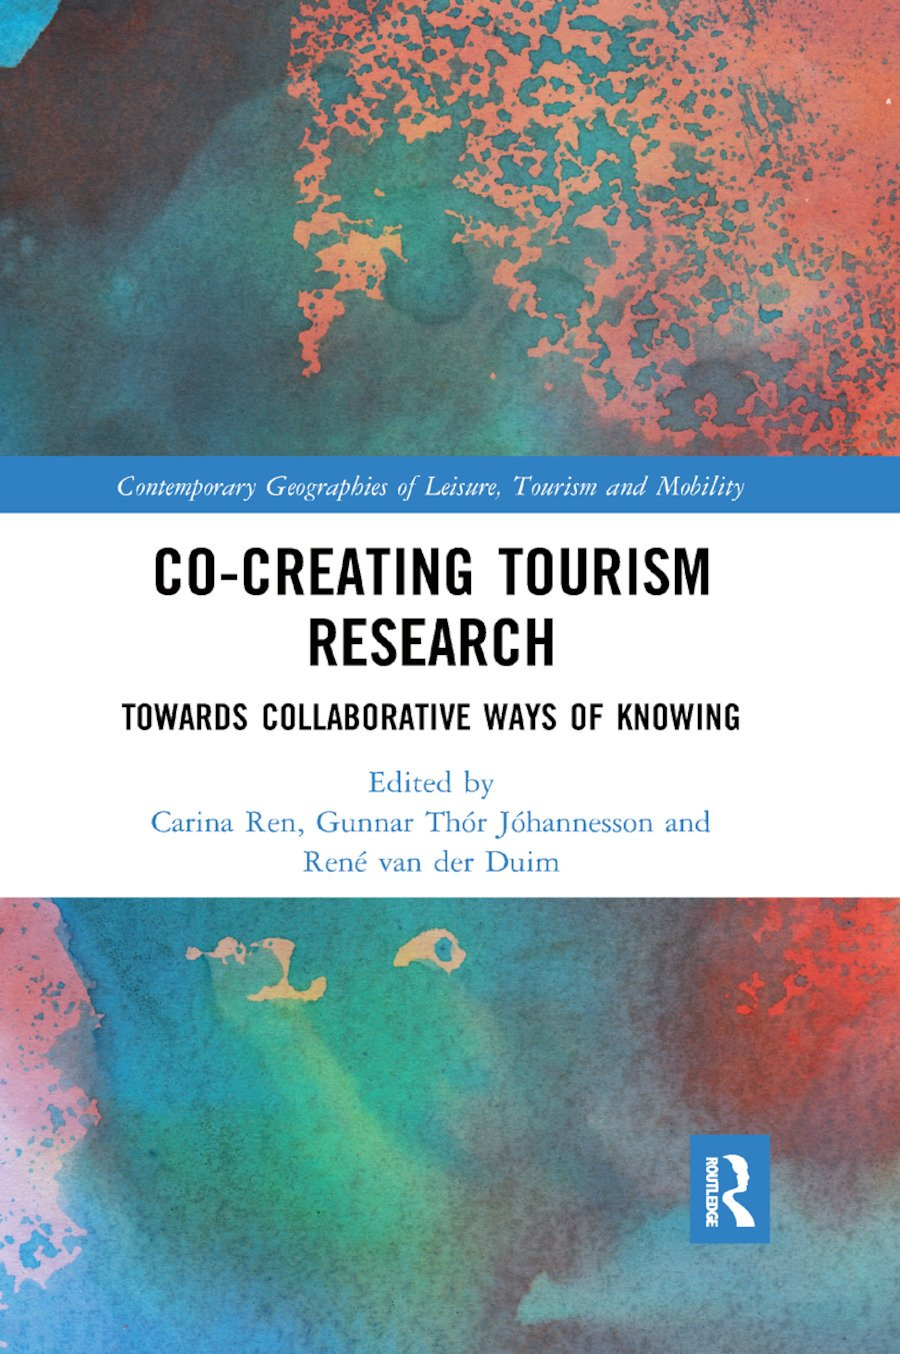 Co-Creating Tourism Research: Towards Collaborative Ways of Knowing book cover